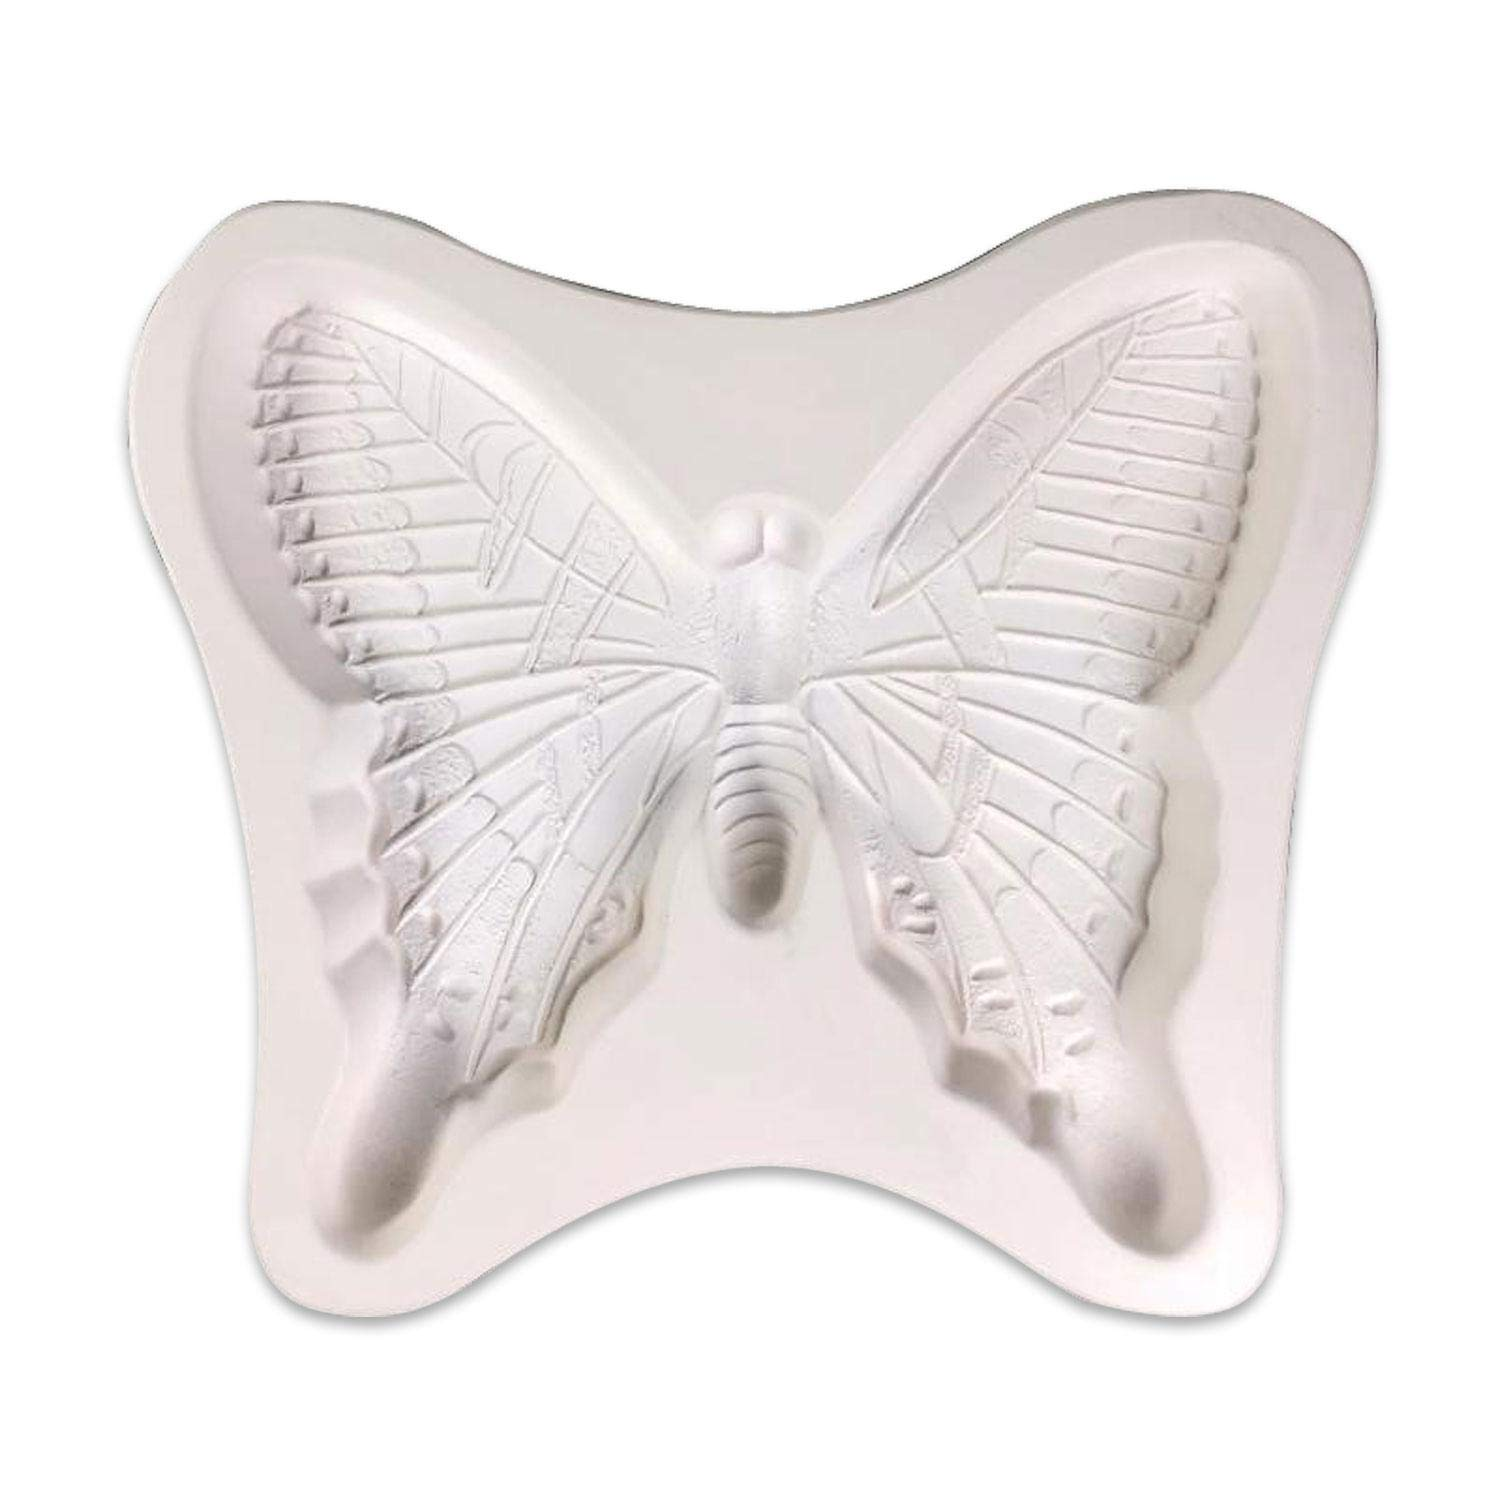 Extra Large Butterfly Casting Mold by Creative Paradise